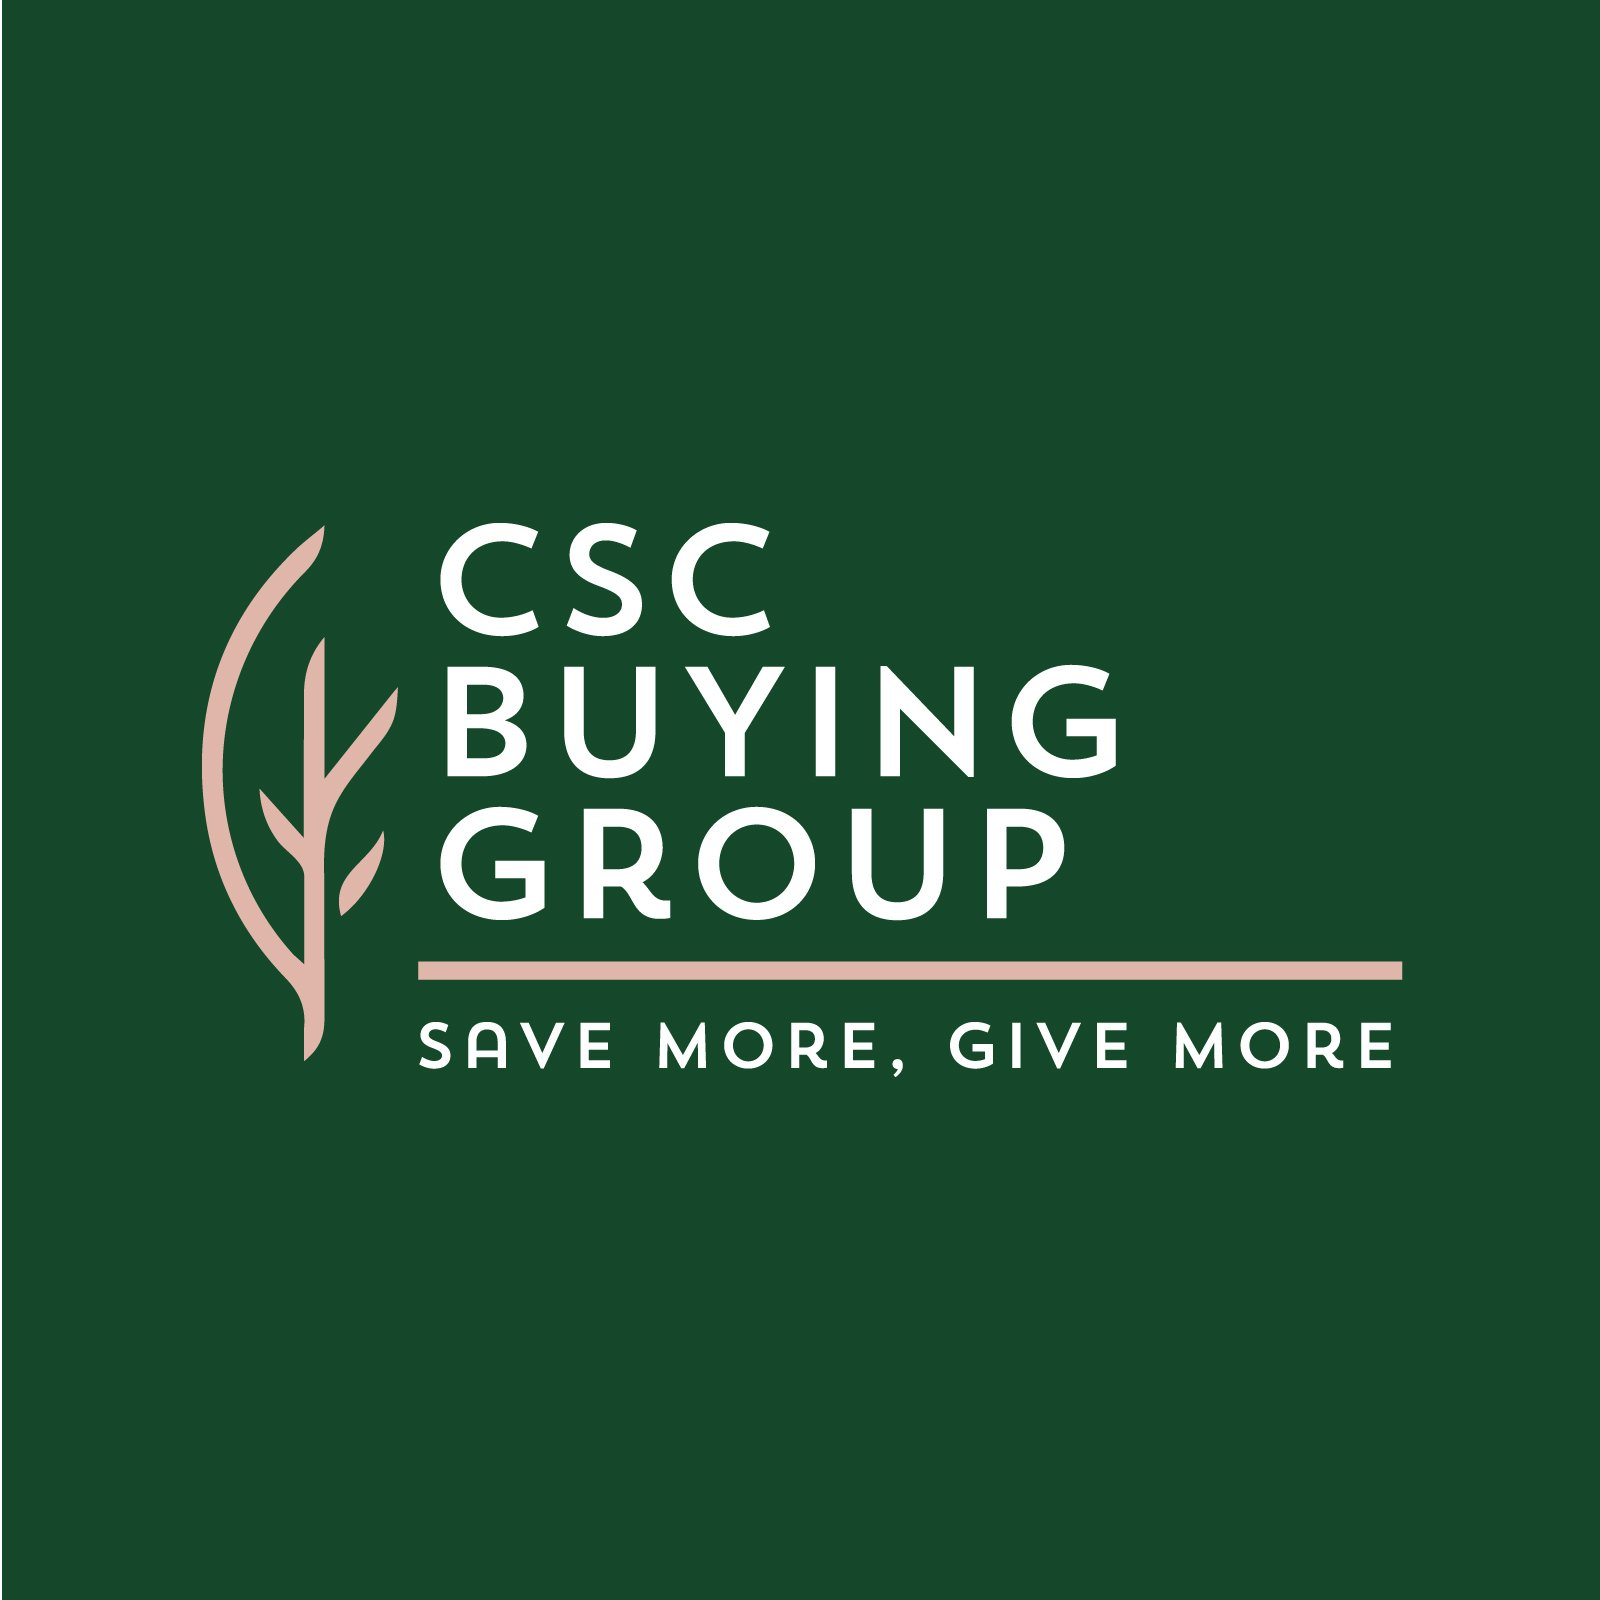 CSC Buying Group